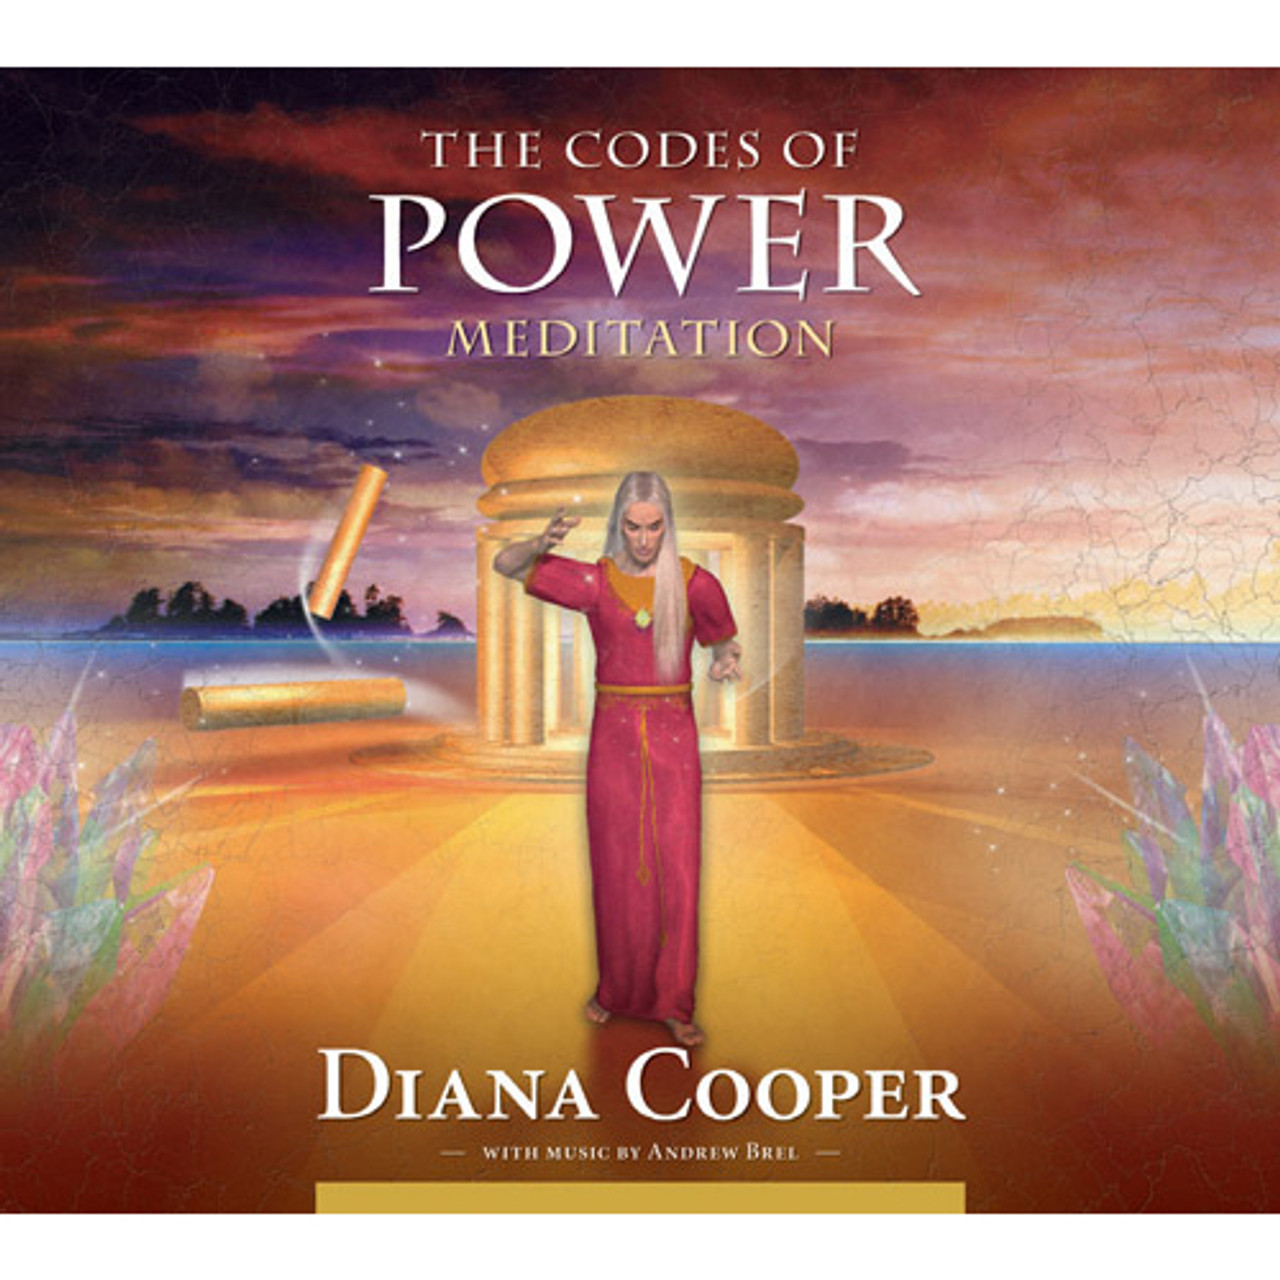 CD: The Codes of Power Meditation by Diana Cooper